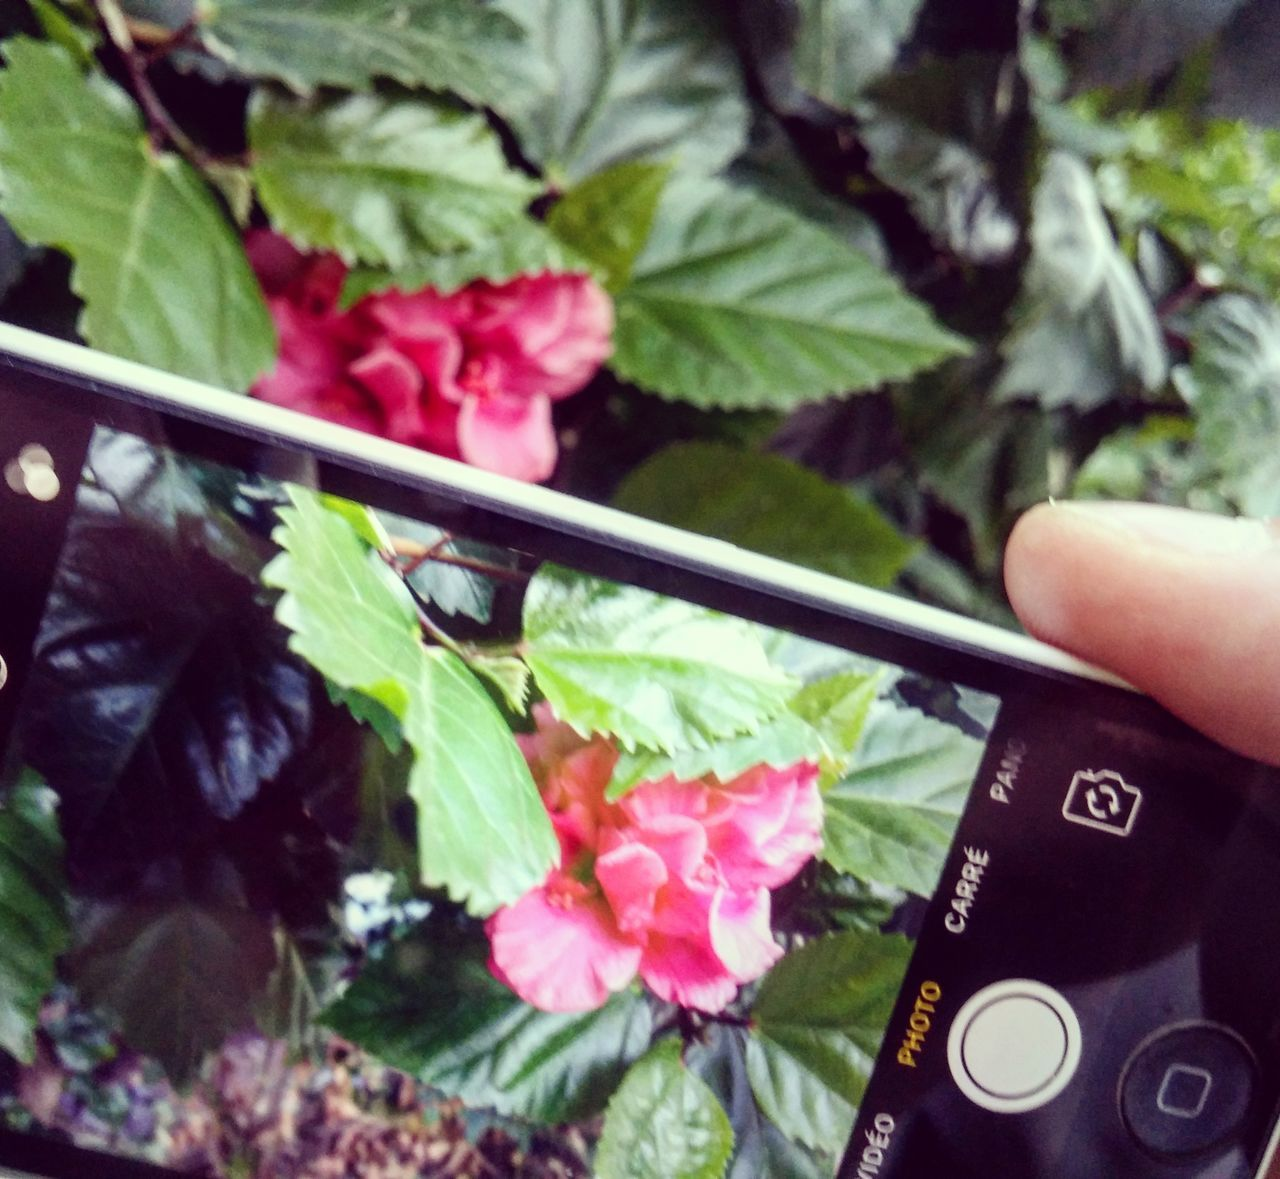 Human Hand Flower Human Body Part One Person Holding Leaf Close-up Growth Freshness Real People Day Fragility Flower Head Beauty In Nature LGG3 PhonePhotography LGg3photography Nature Indoors  People